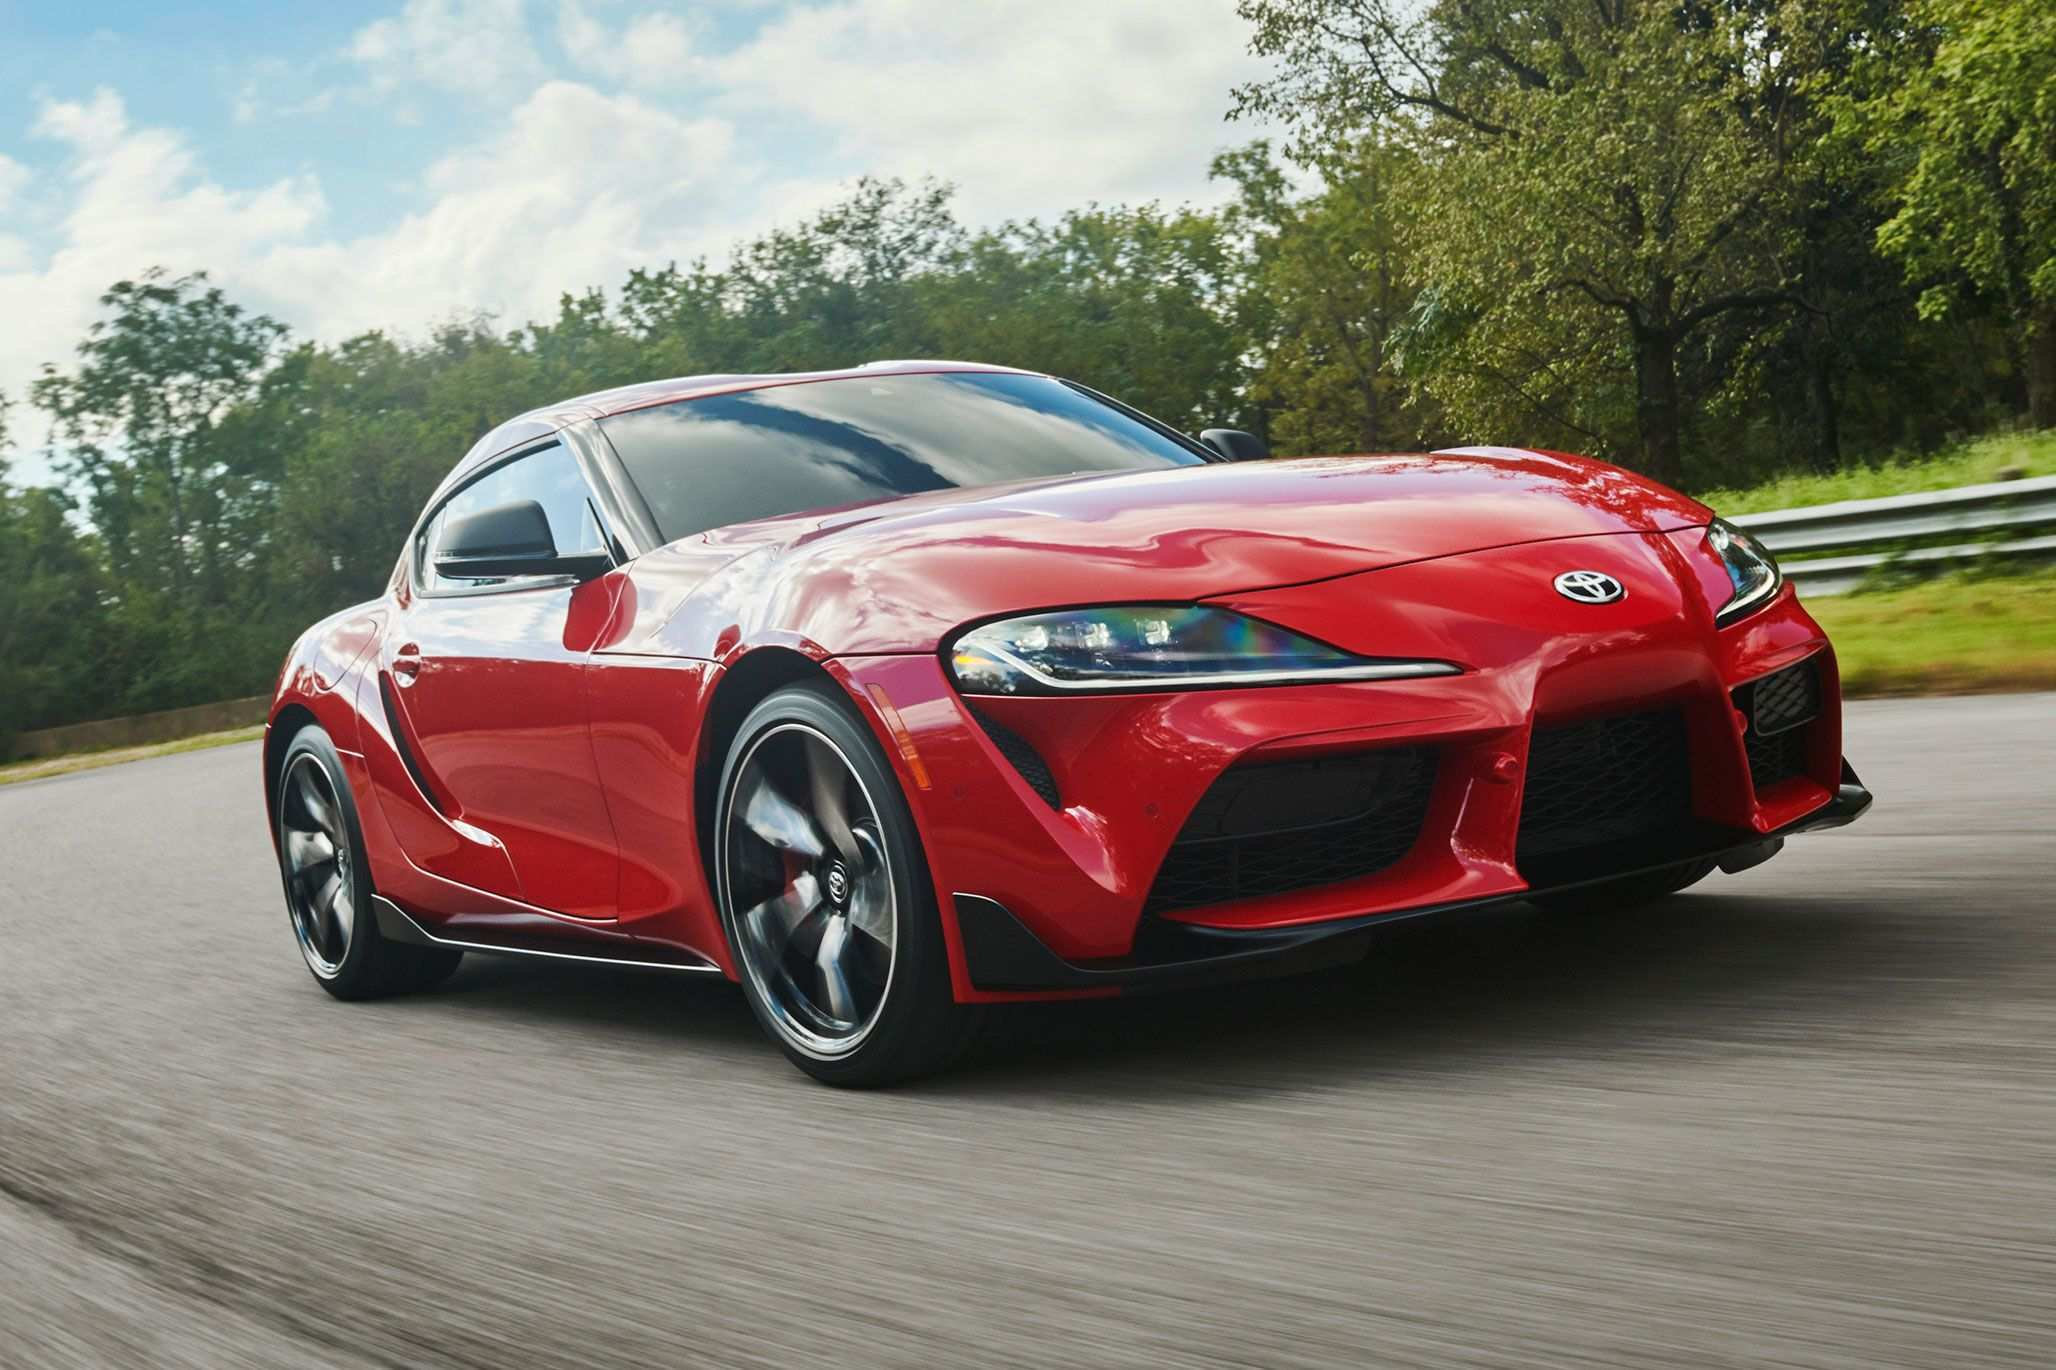 34 Best 2019 Toyota Supra News Images